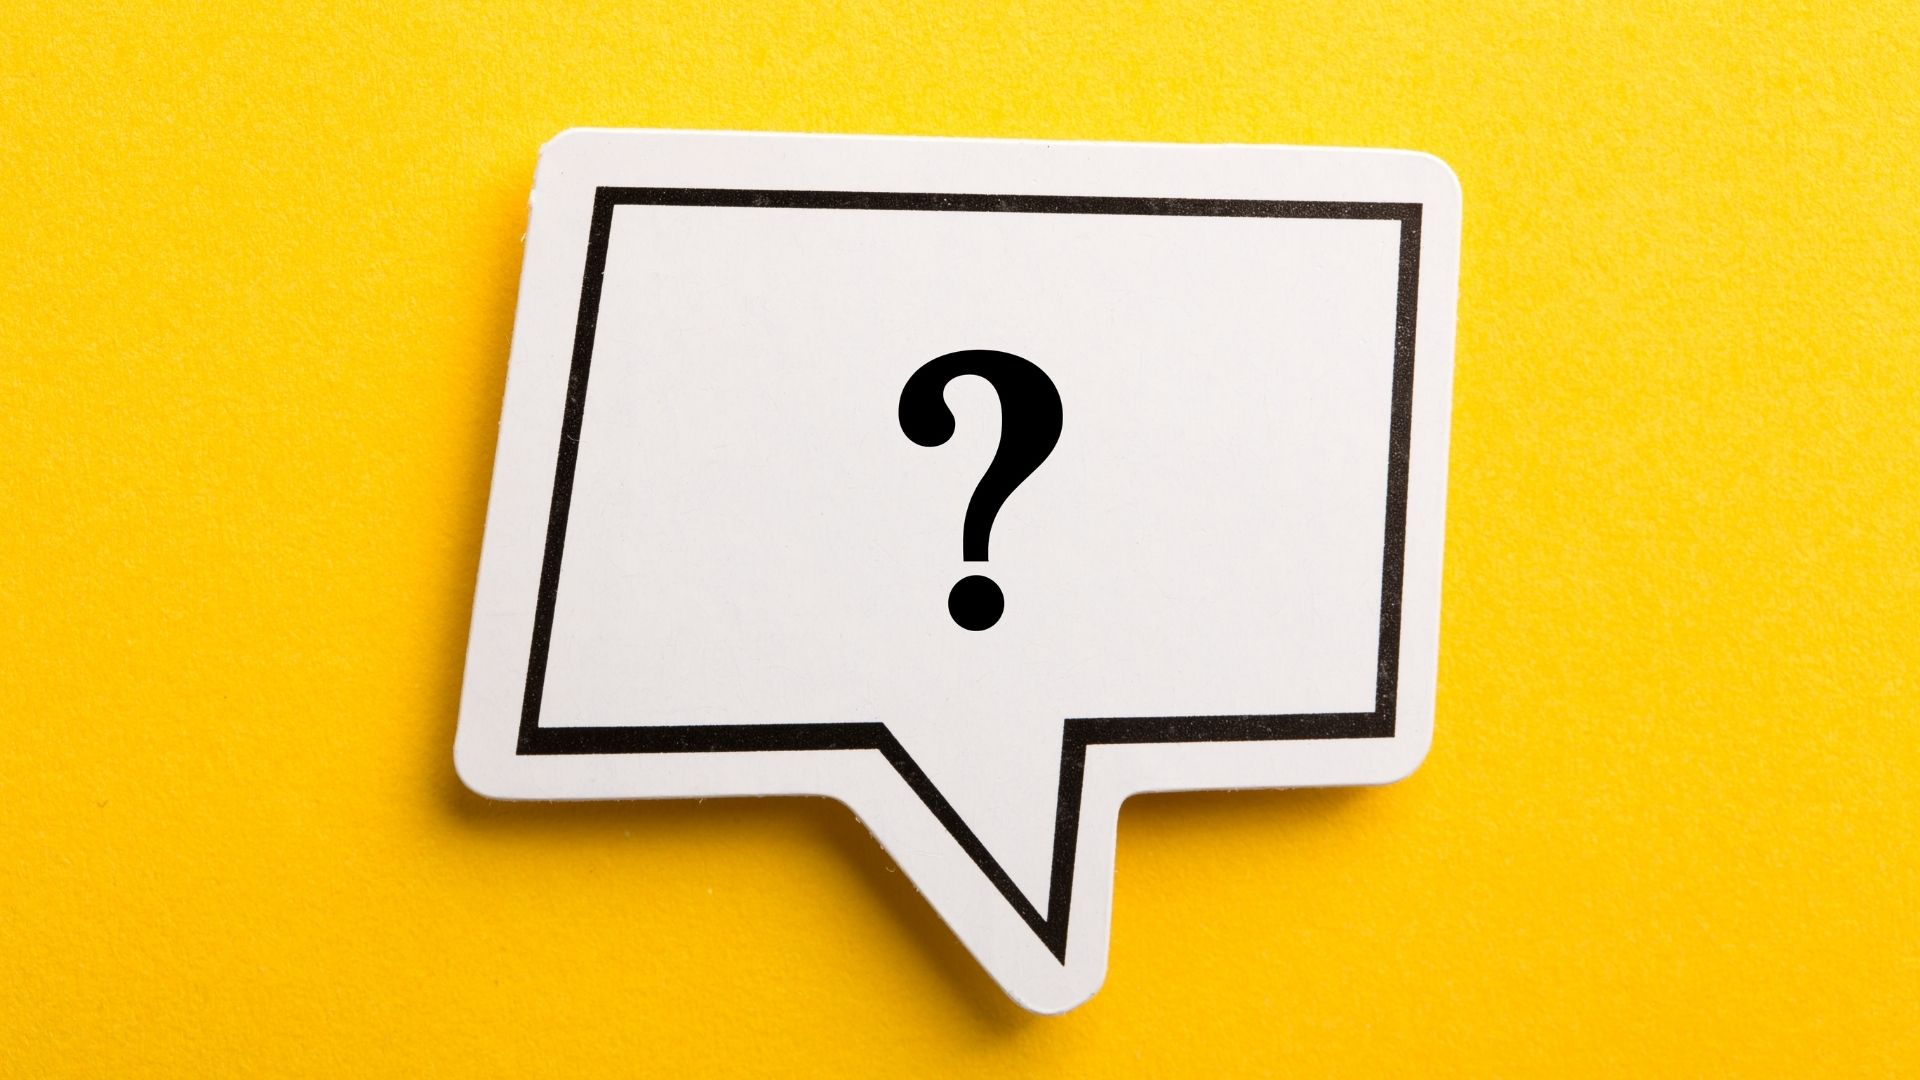 asking questions about someone's disability - a yellow background with a word bubble and a question mark